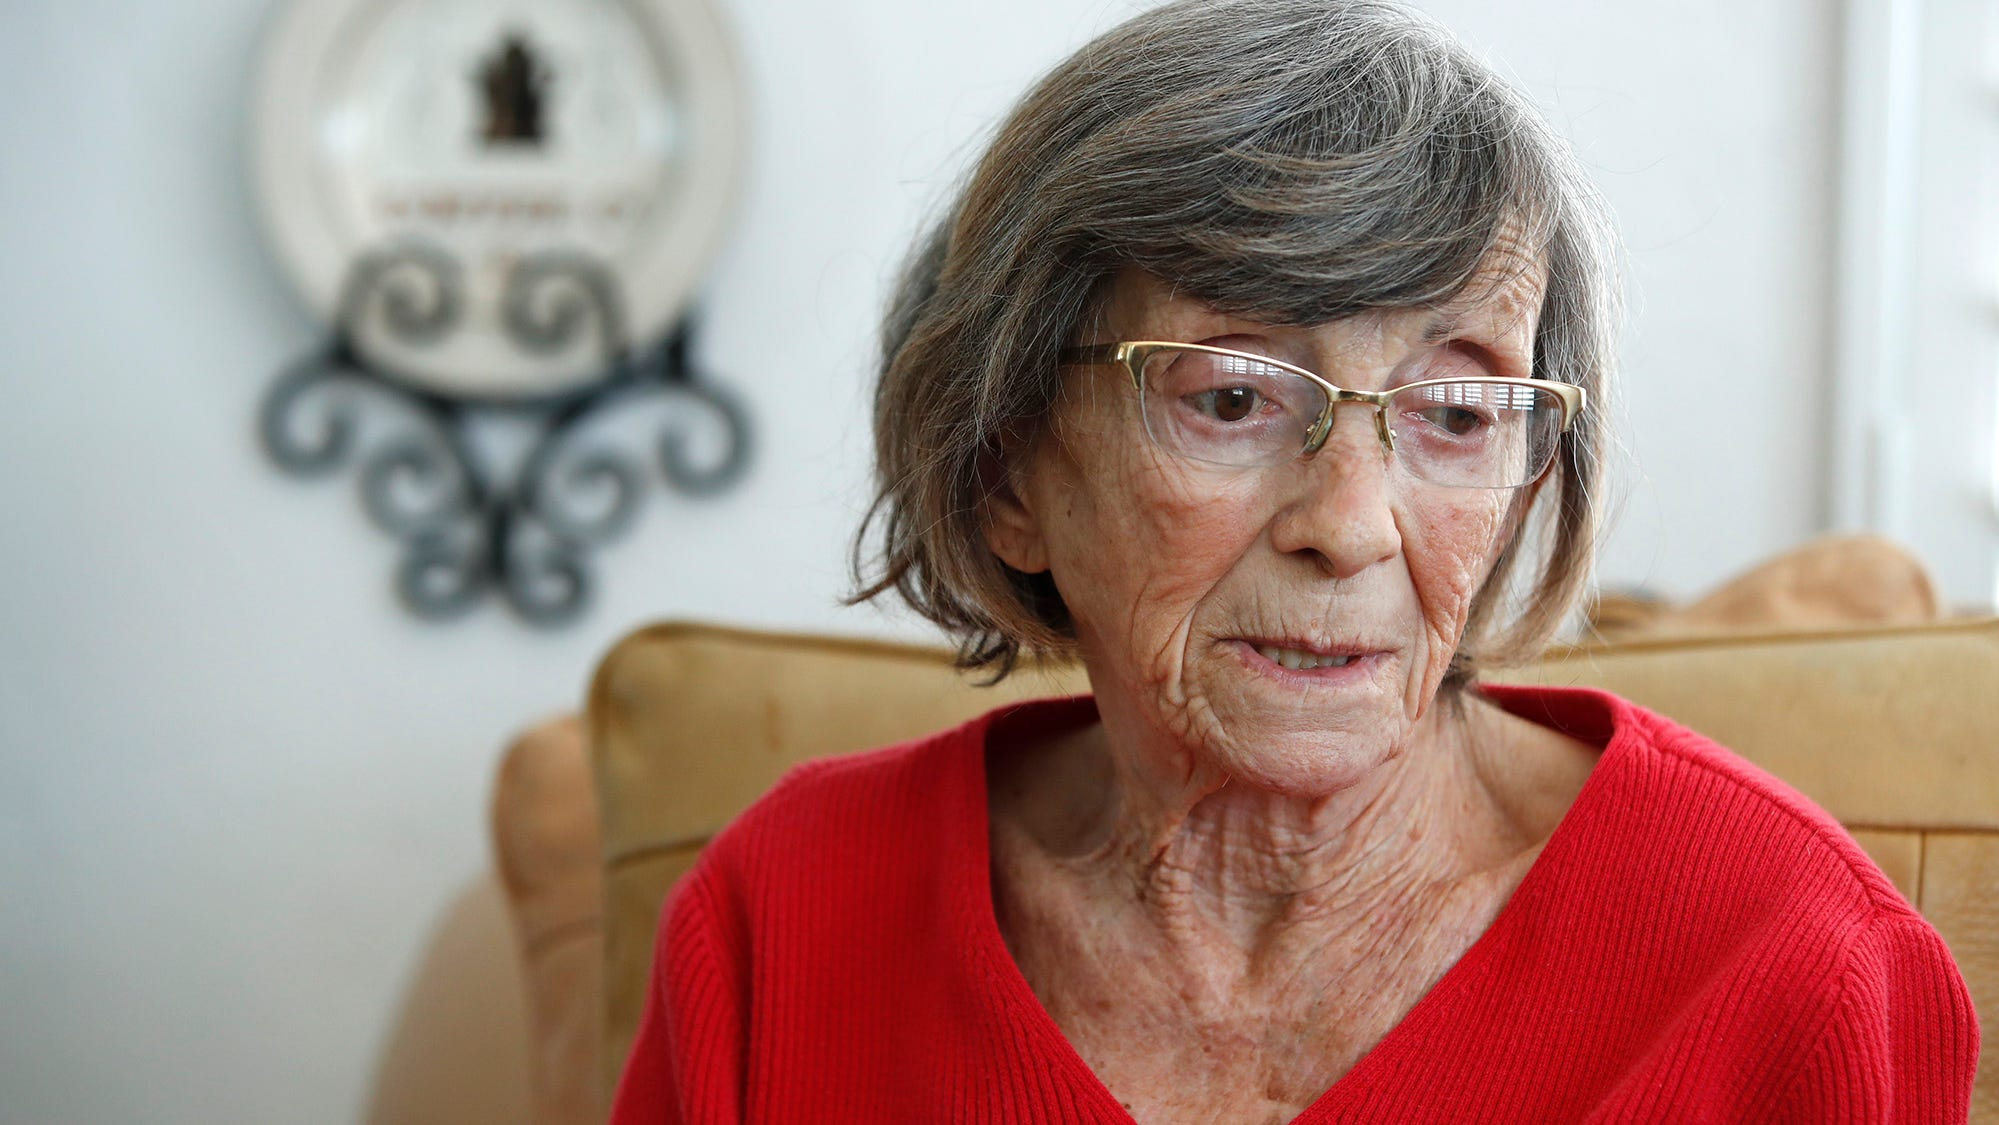 """Mary Tornabene, 92, talks about her unsuccessful efforts to get the COVID vaccine. """"I couldn't wait all night in the cold,"""" Tornabene said of the prospect of joining seniors hwo did that at a recent vaccination event in Daytona Beach. """"I can wait, but not for eight hours."""""""